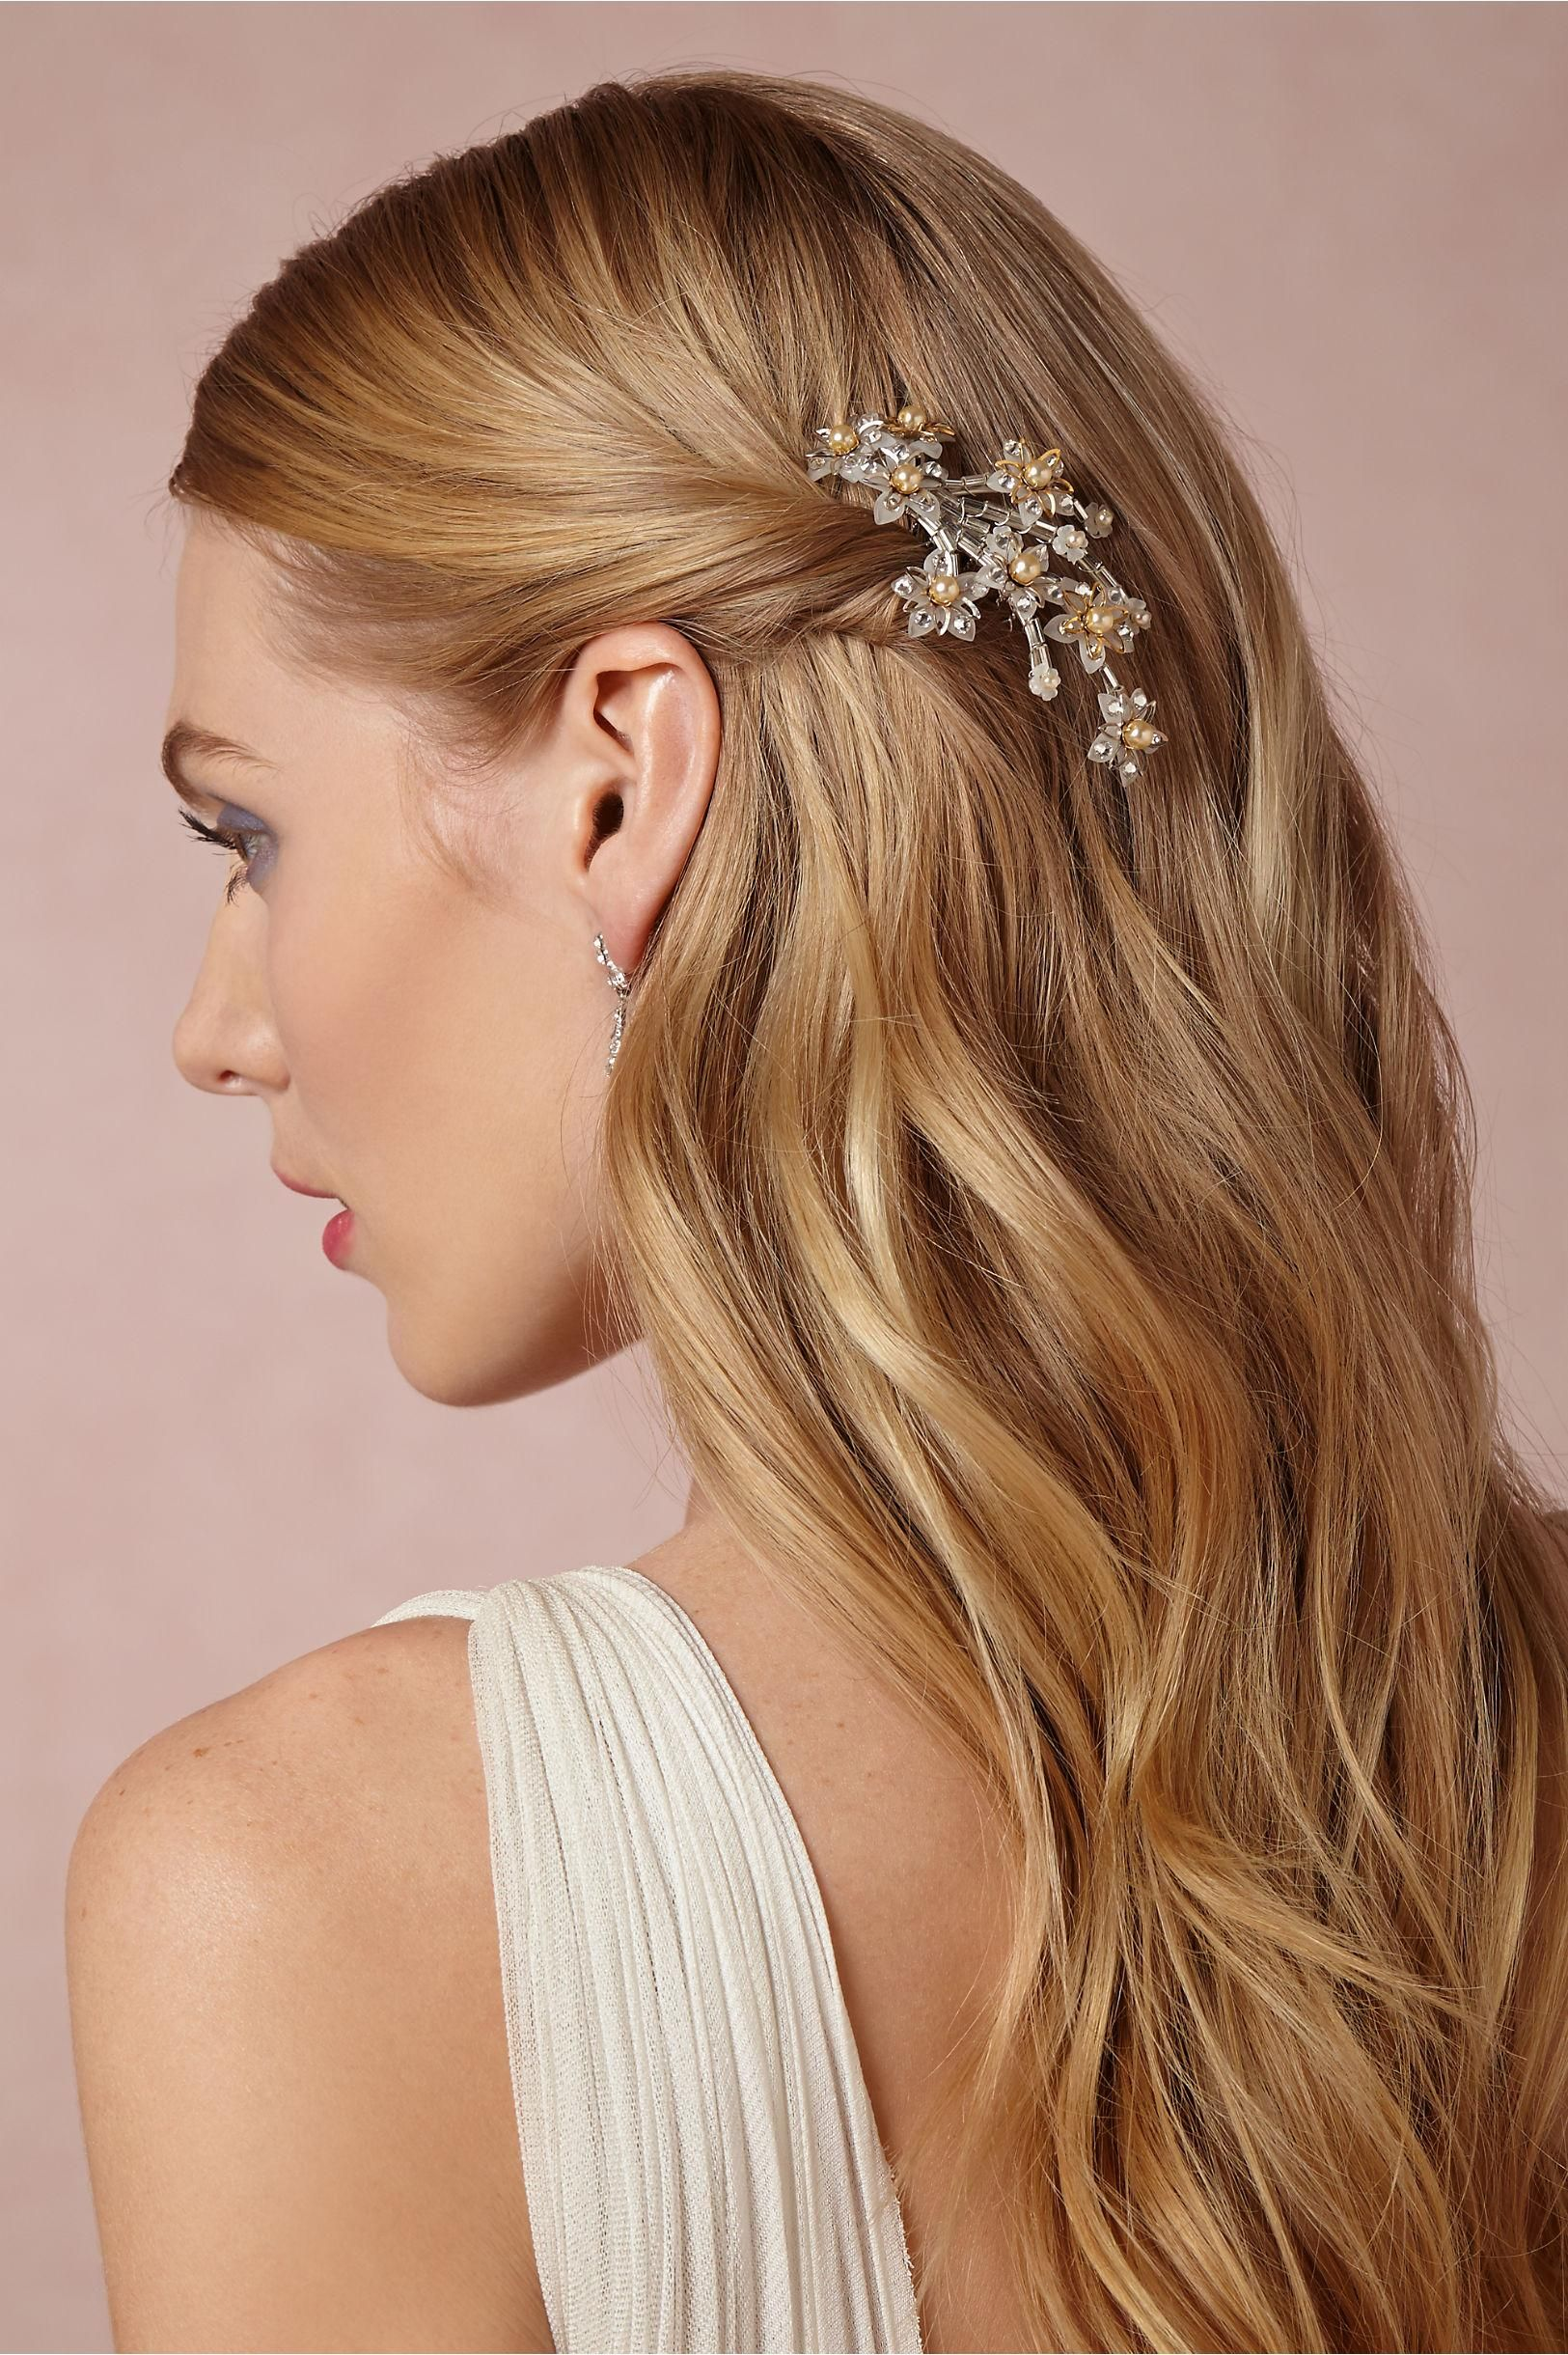 product | Pearled Daisy Hair Comb by Debra Moreland for BHLDN